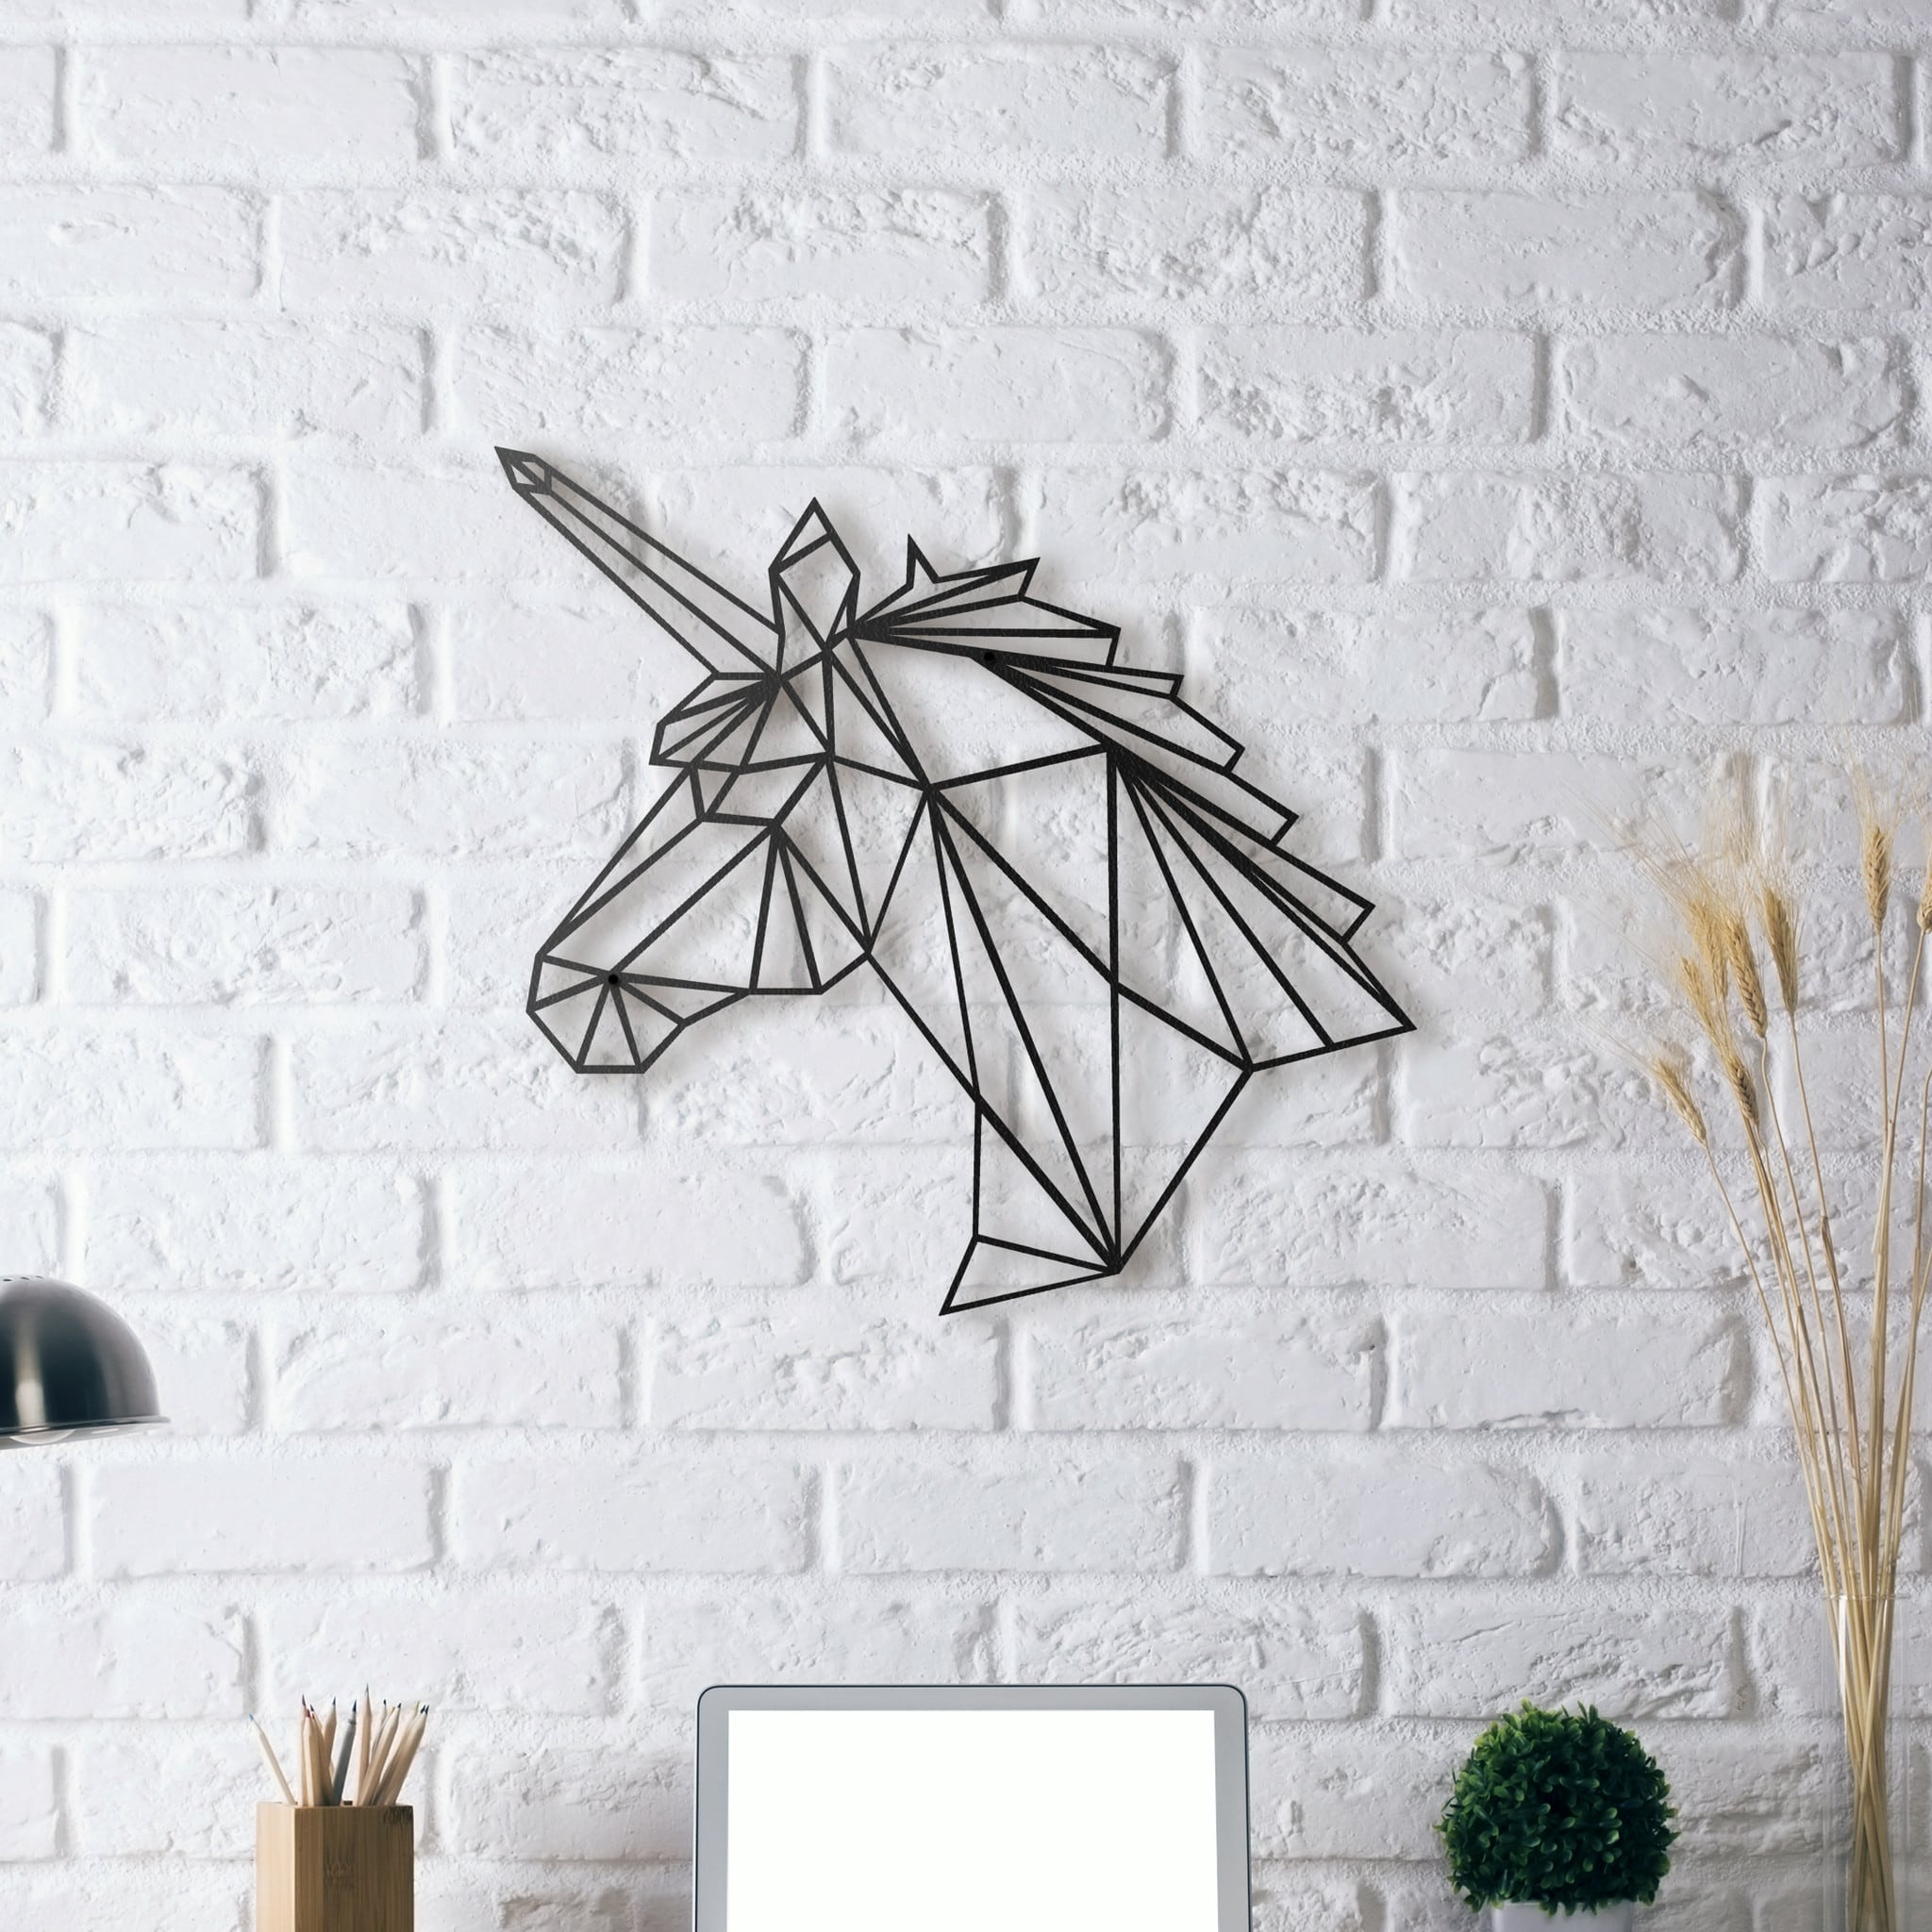 Metal wall decoration of a design unicorn to have a trendy and modern interior